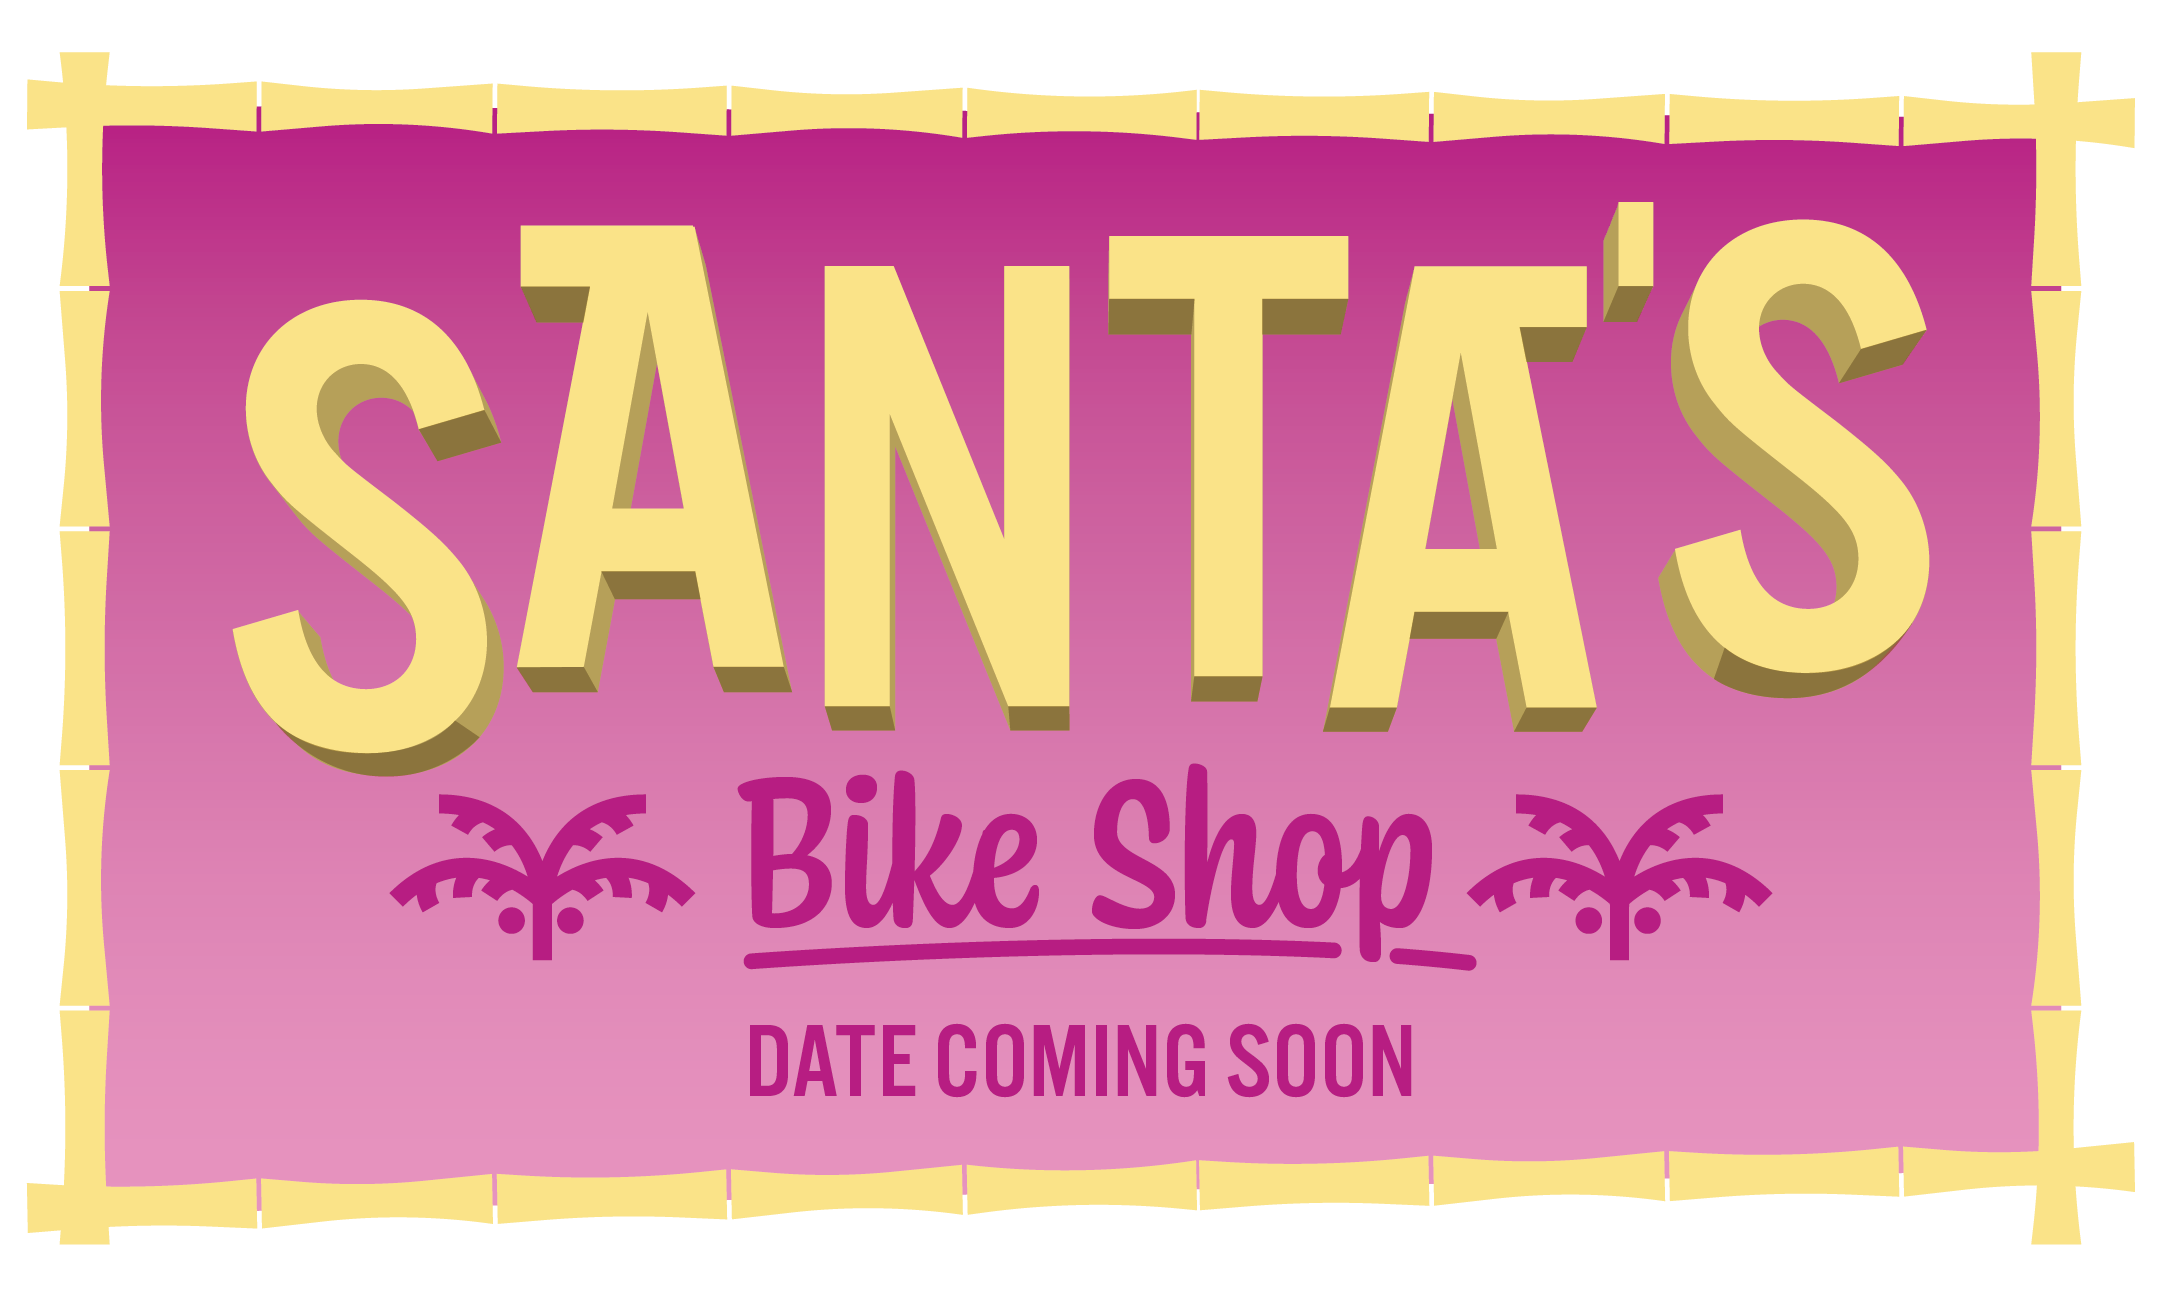 Santa's Bike Shop Date Coming Soon